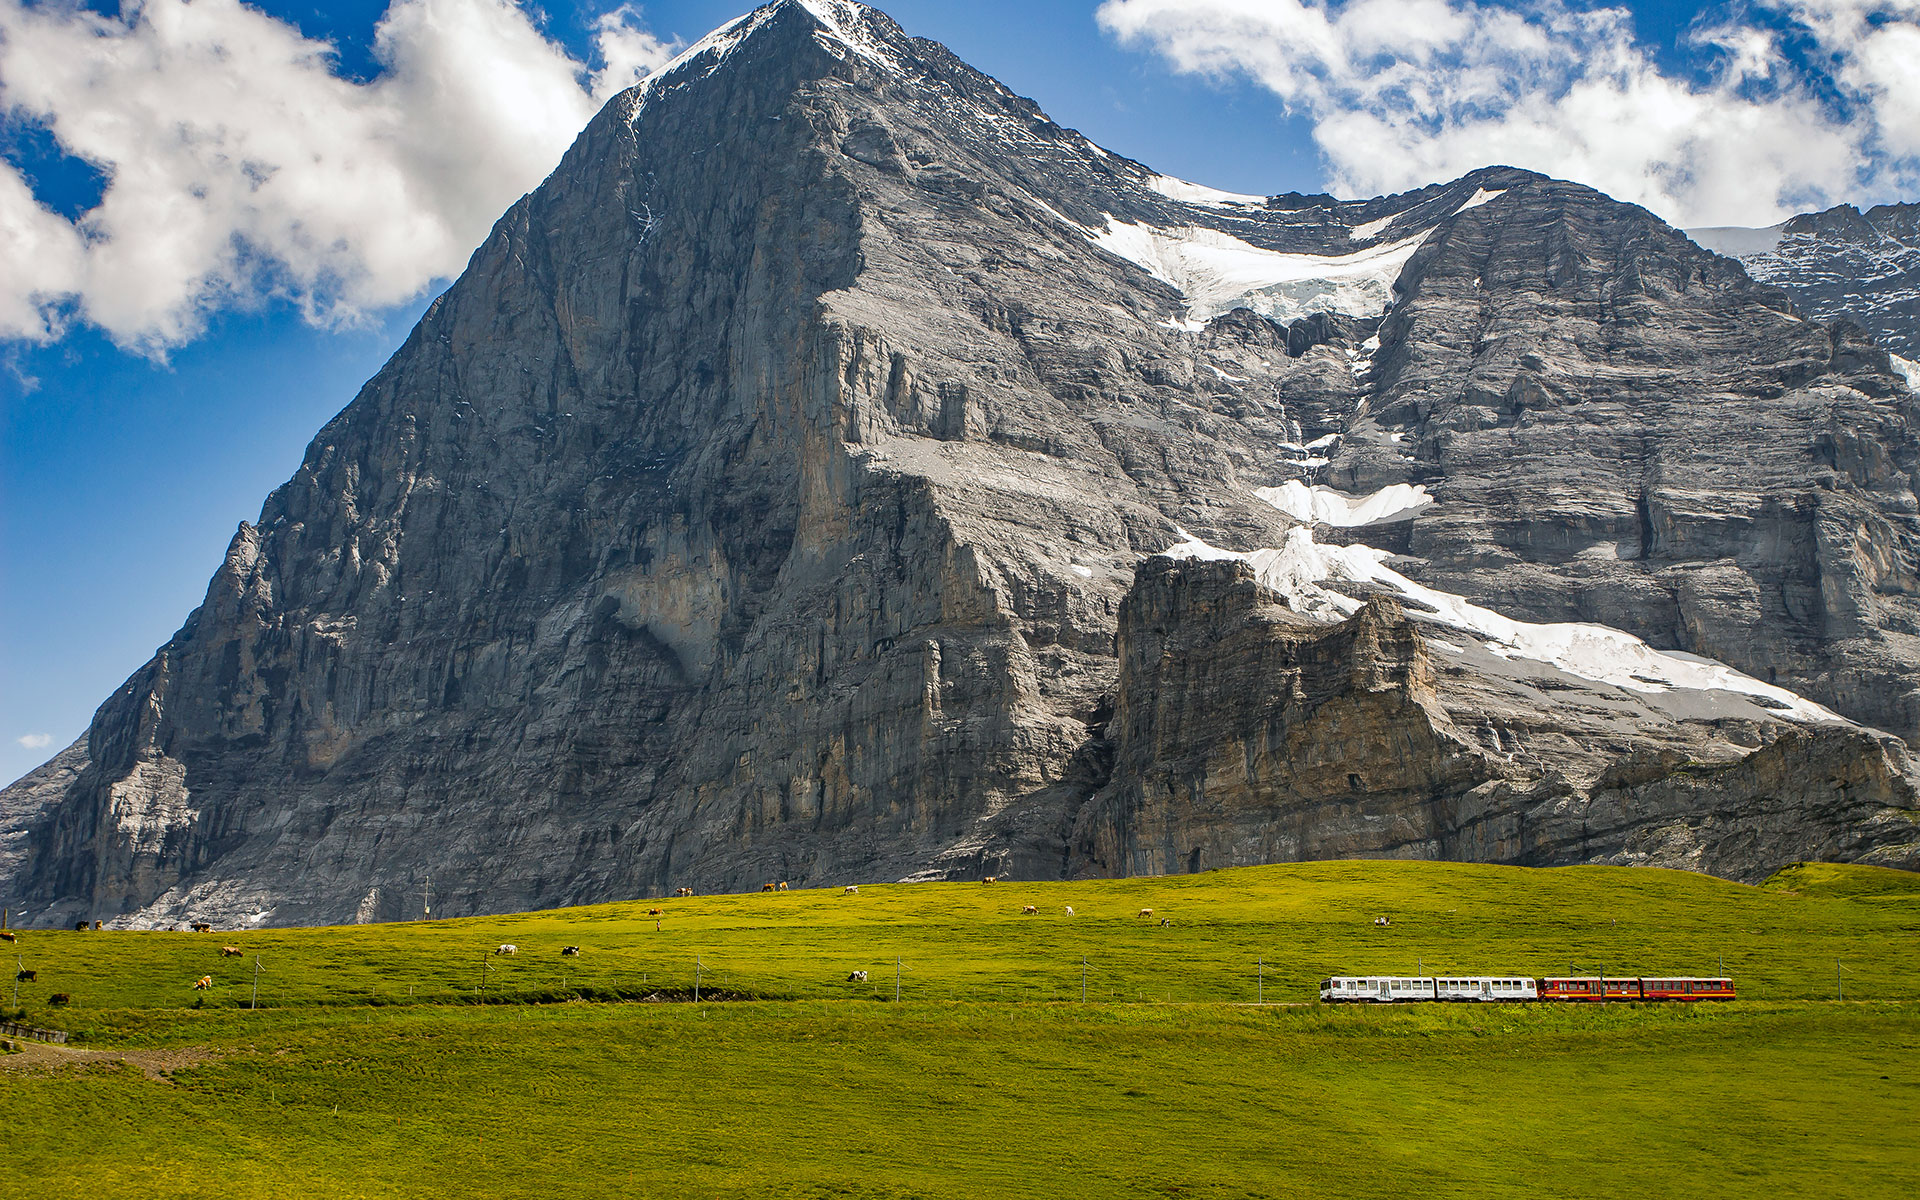 The North Face of the Eiger in the Swiss Alps (photo © Steven van Aerschot / dreamstime . com).